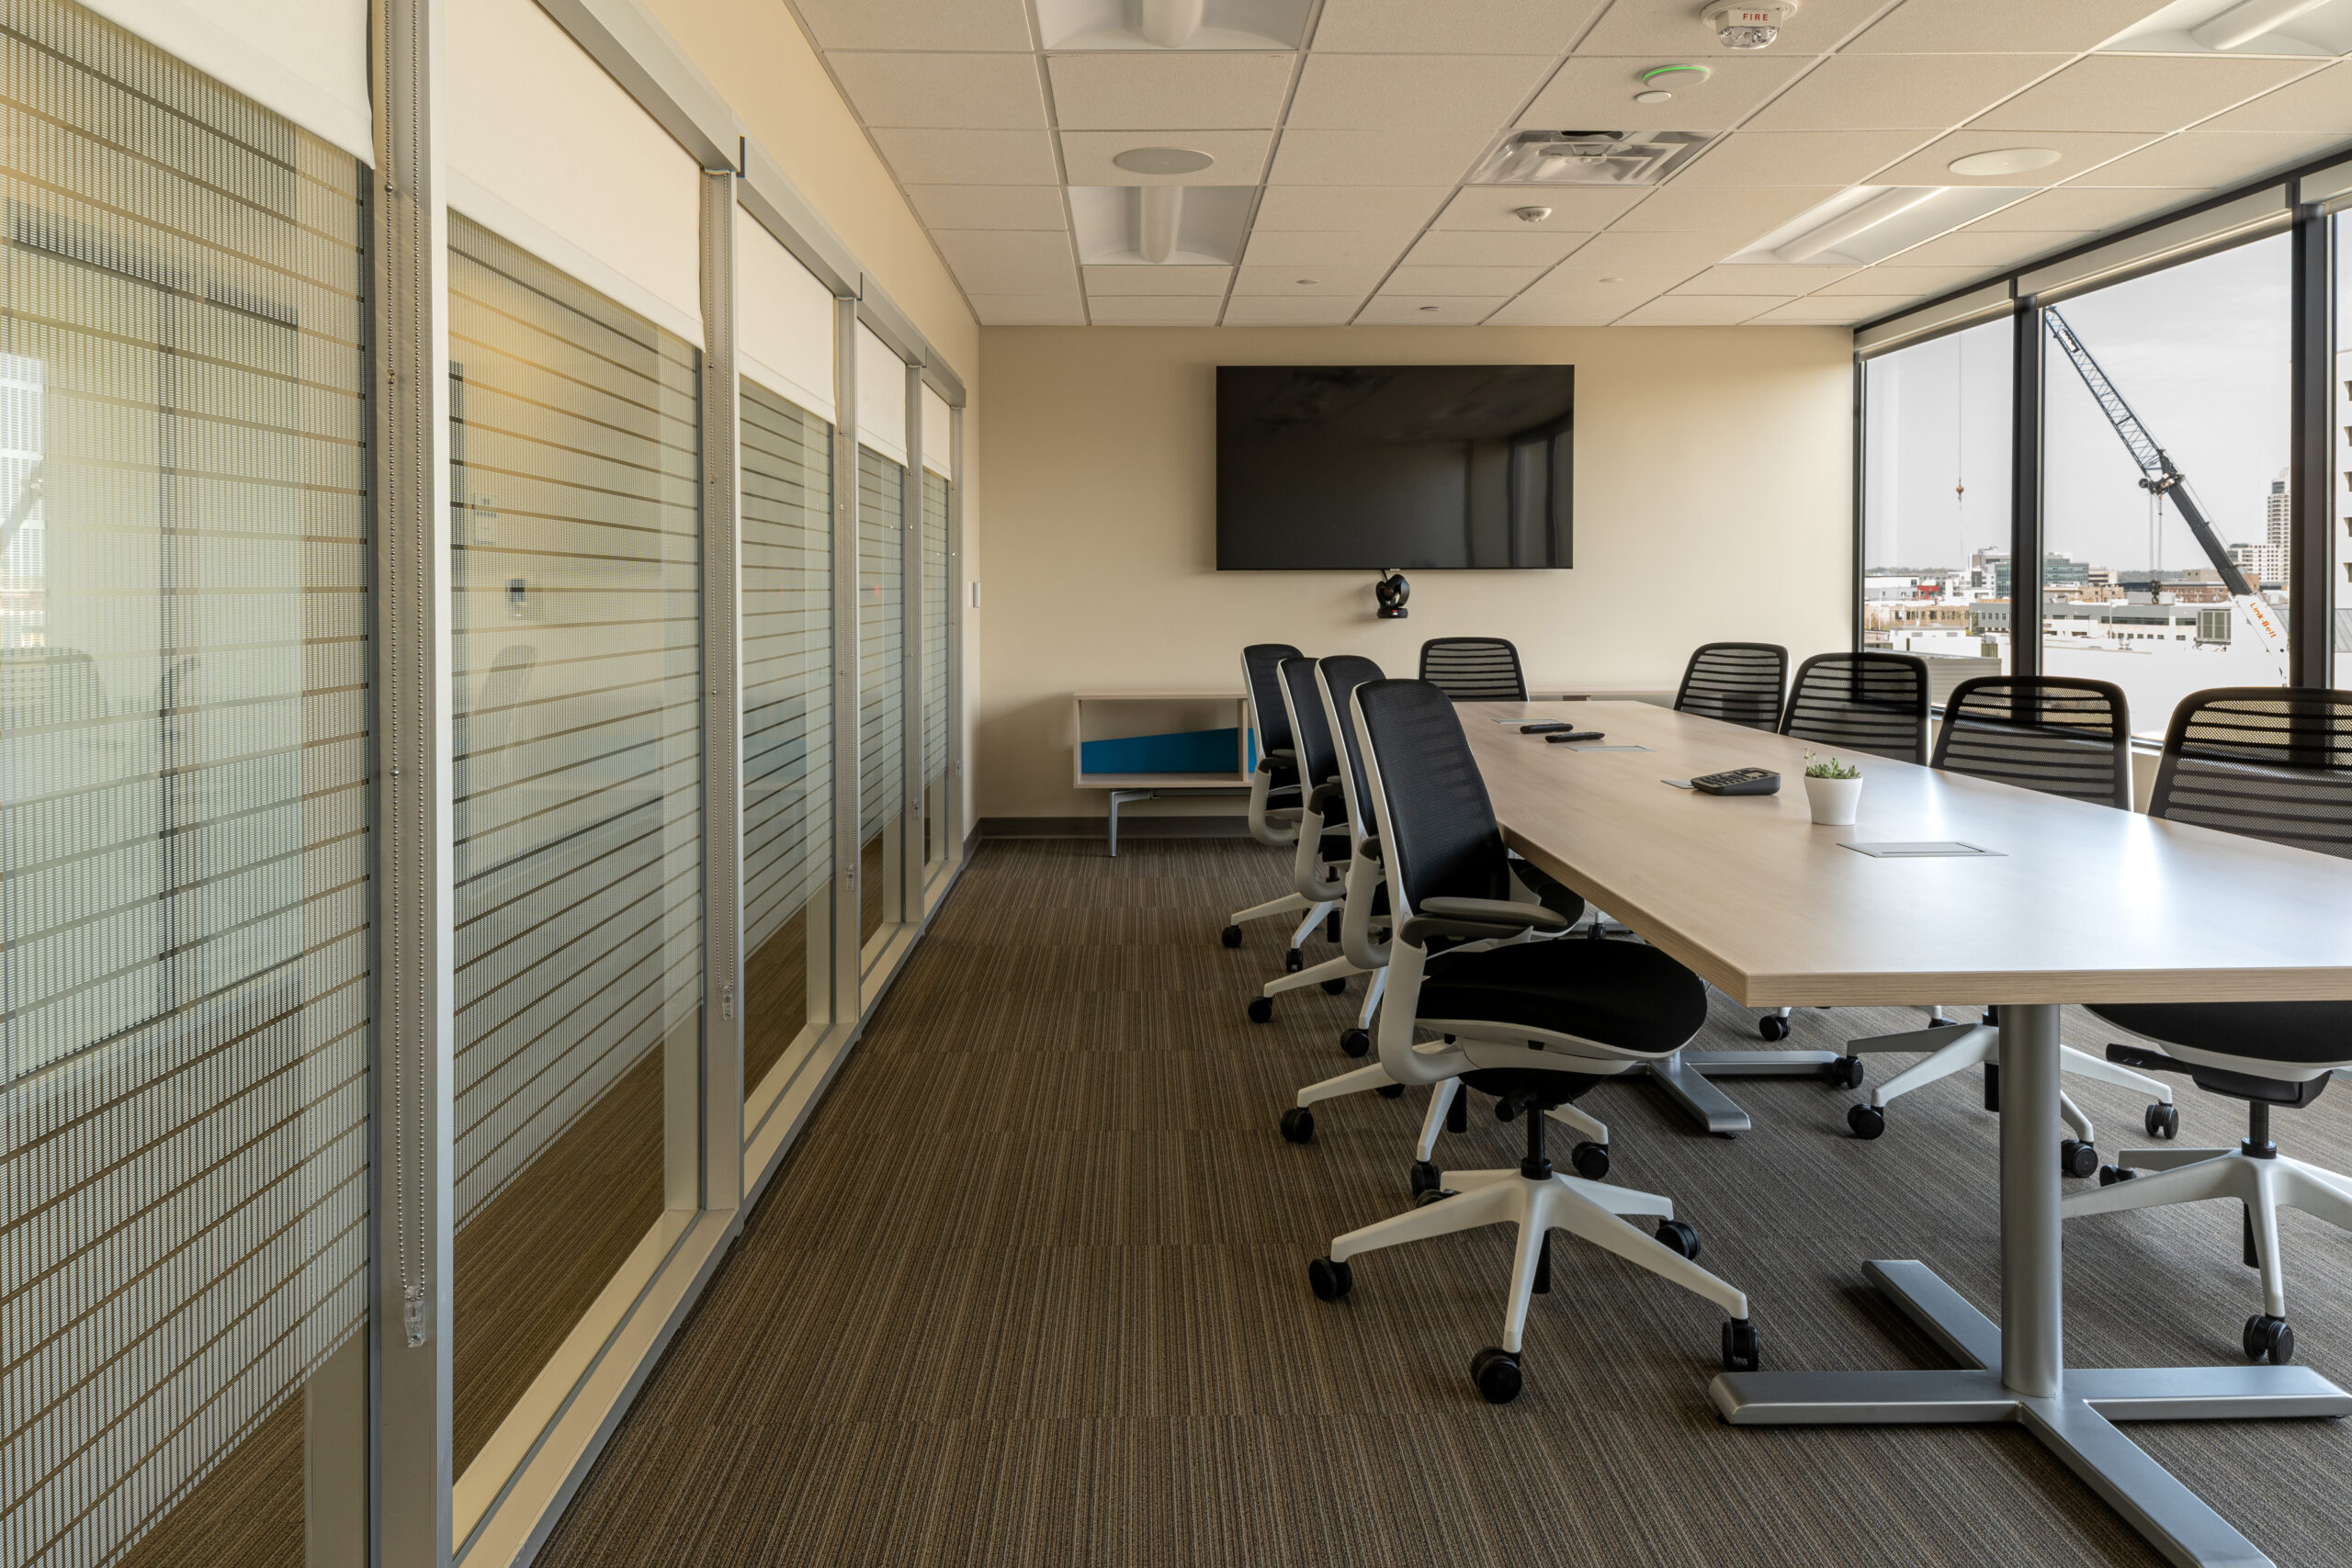 Conference table with chairs in a bright space.